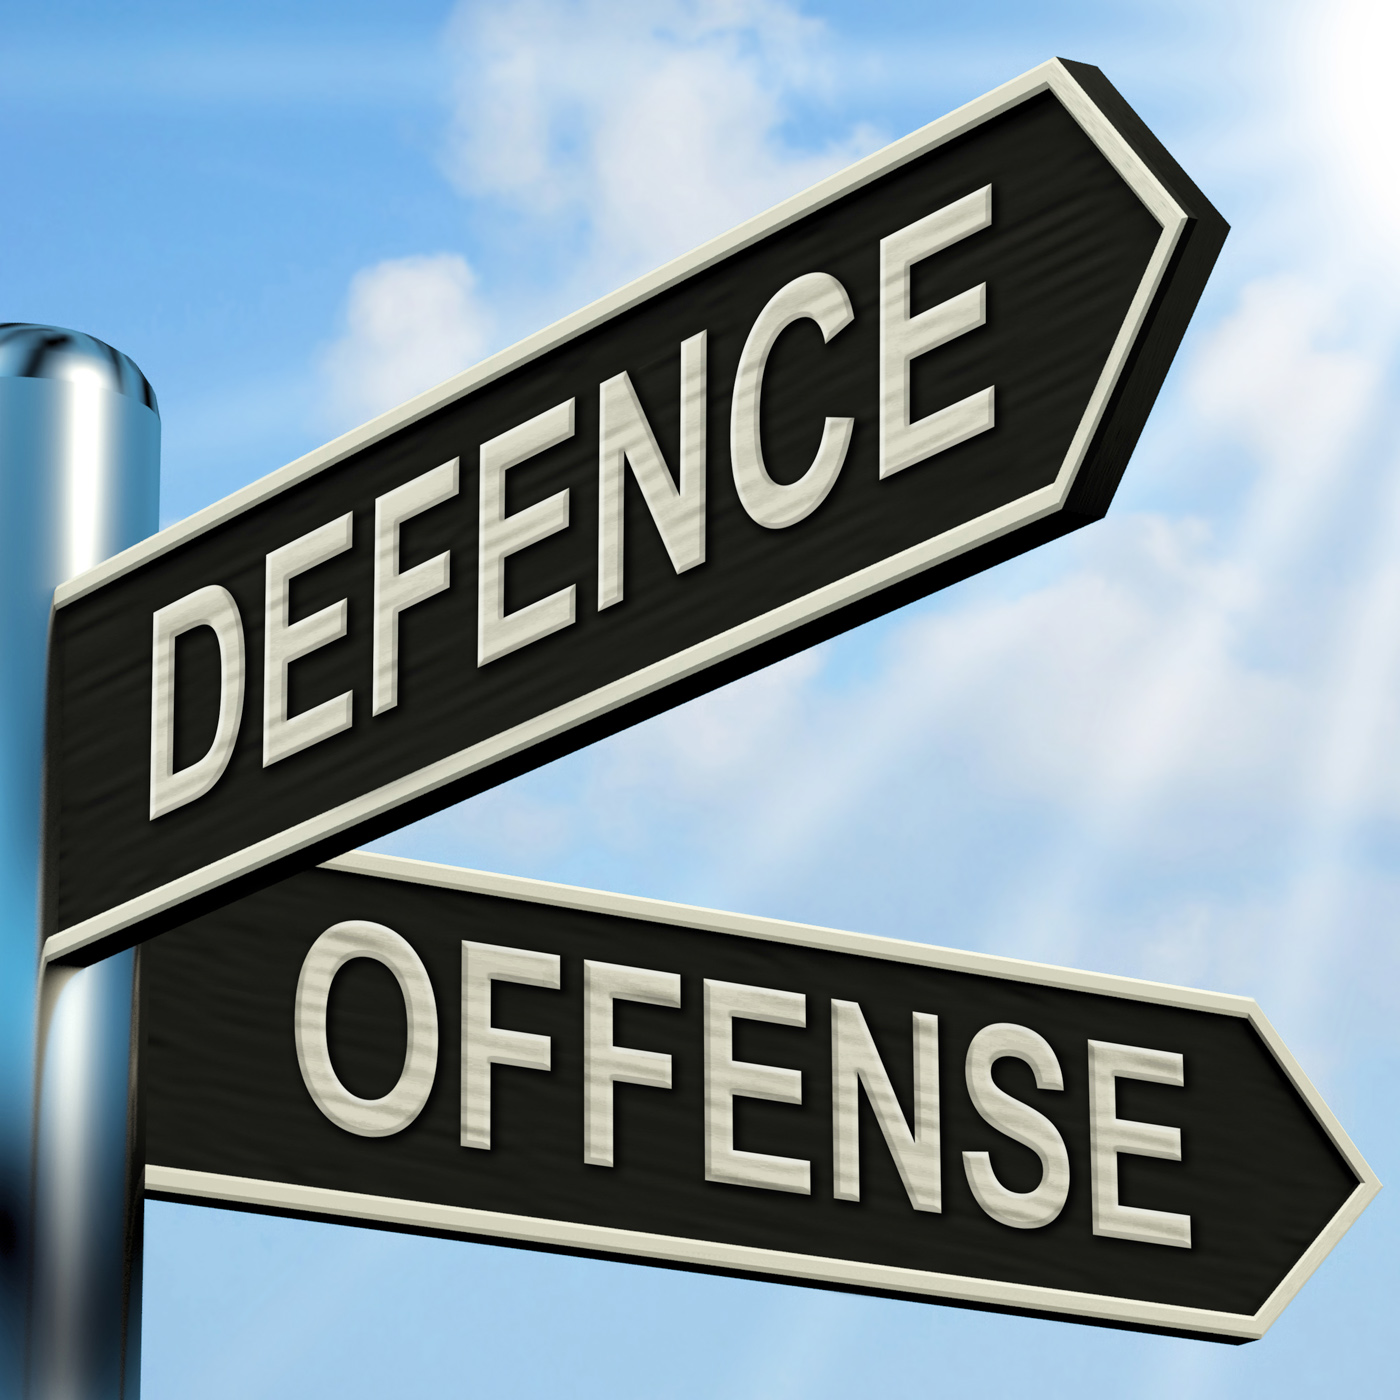 Defence Offense Signpost Shows Defending And Tactics, Advance, Attack, Competition, Defence, HQ Photo